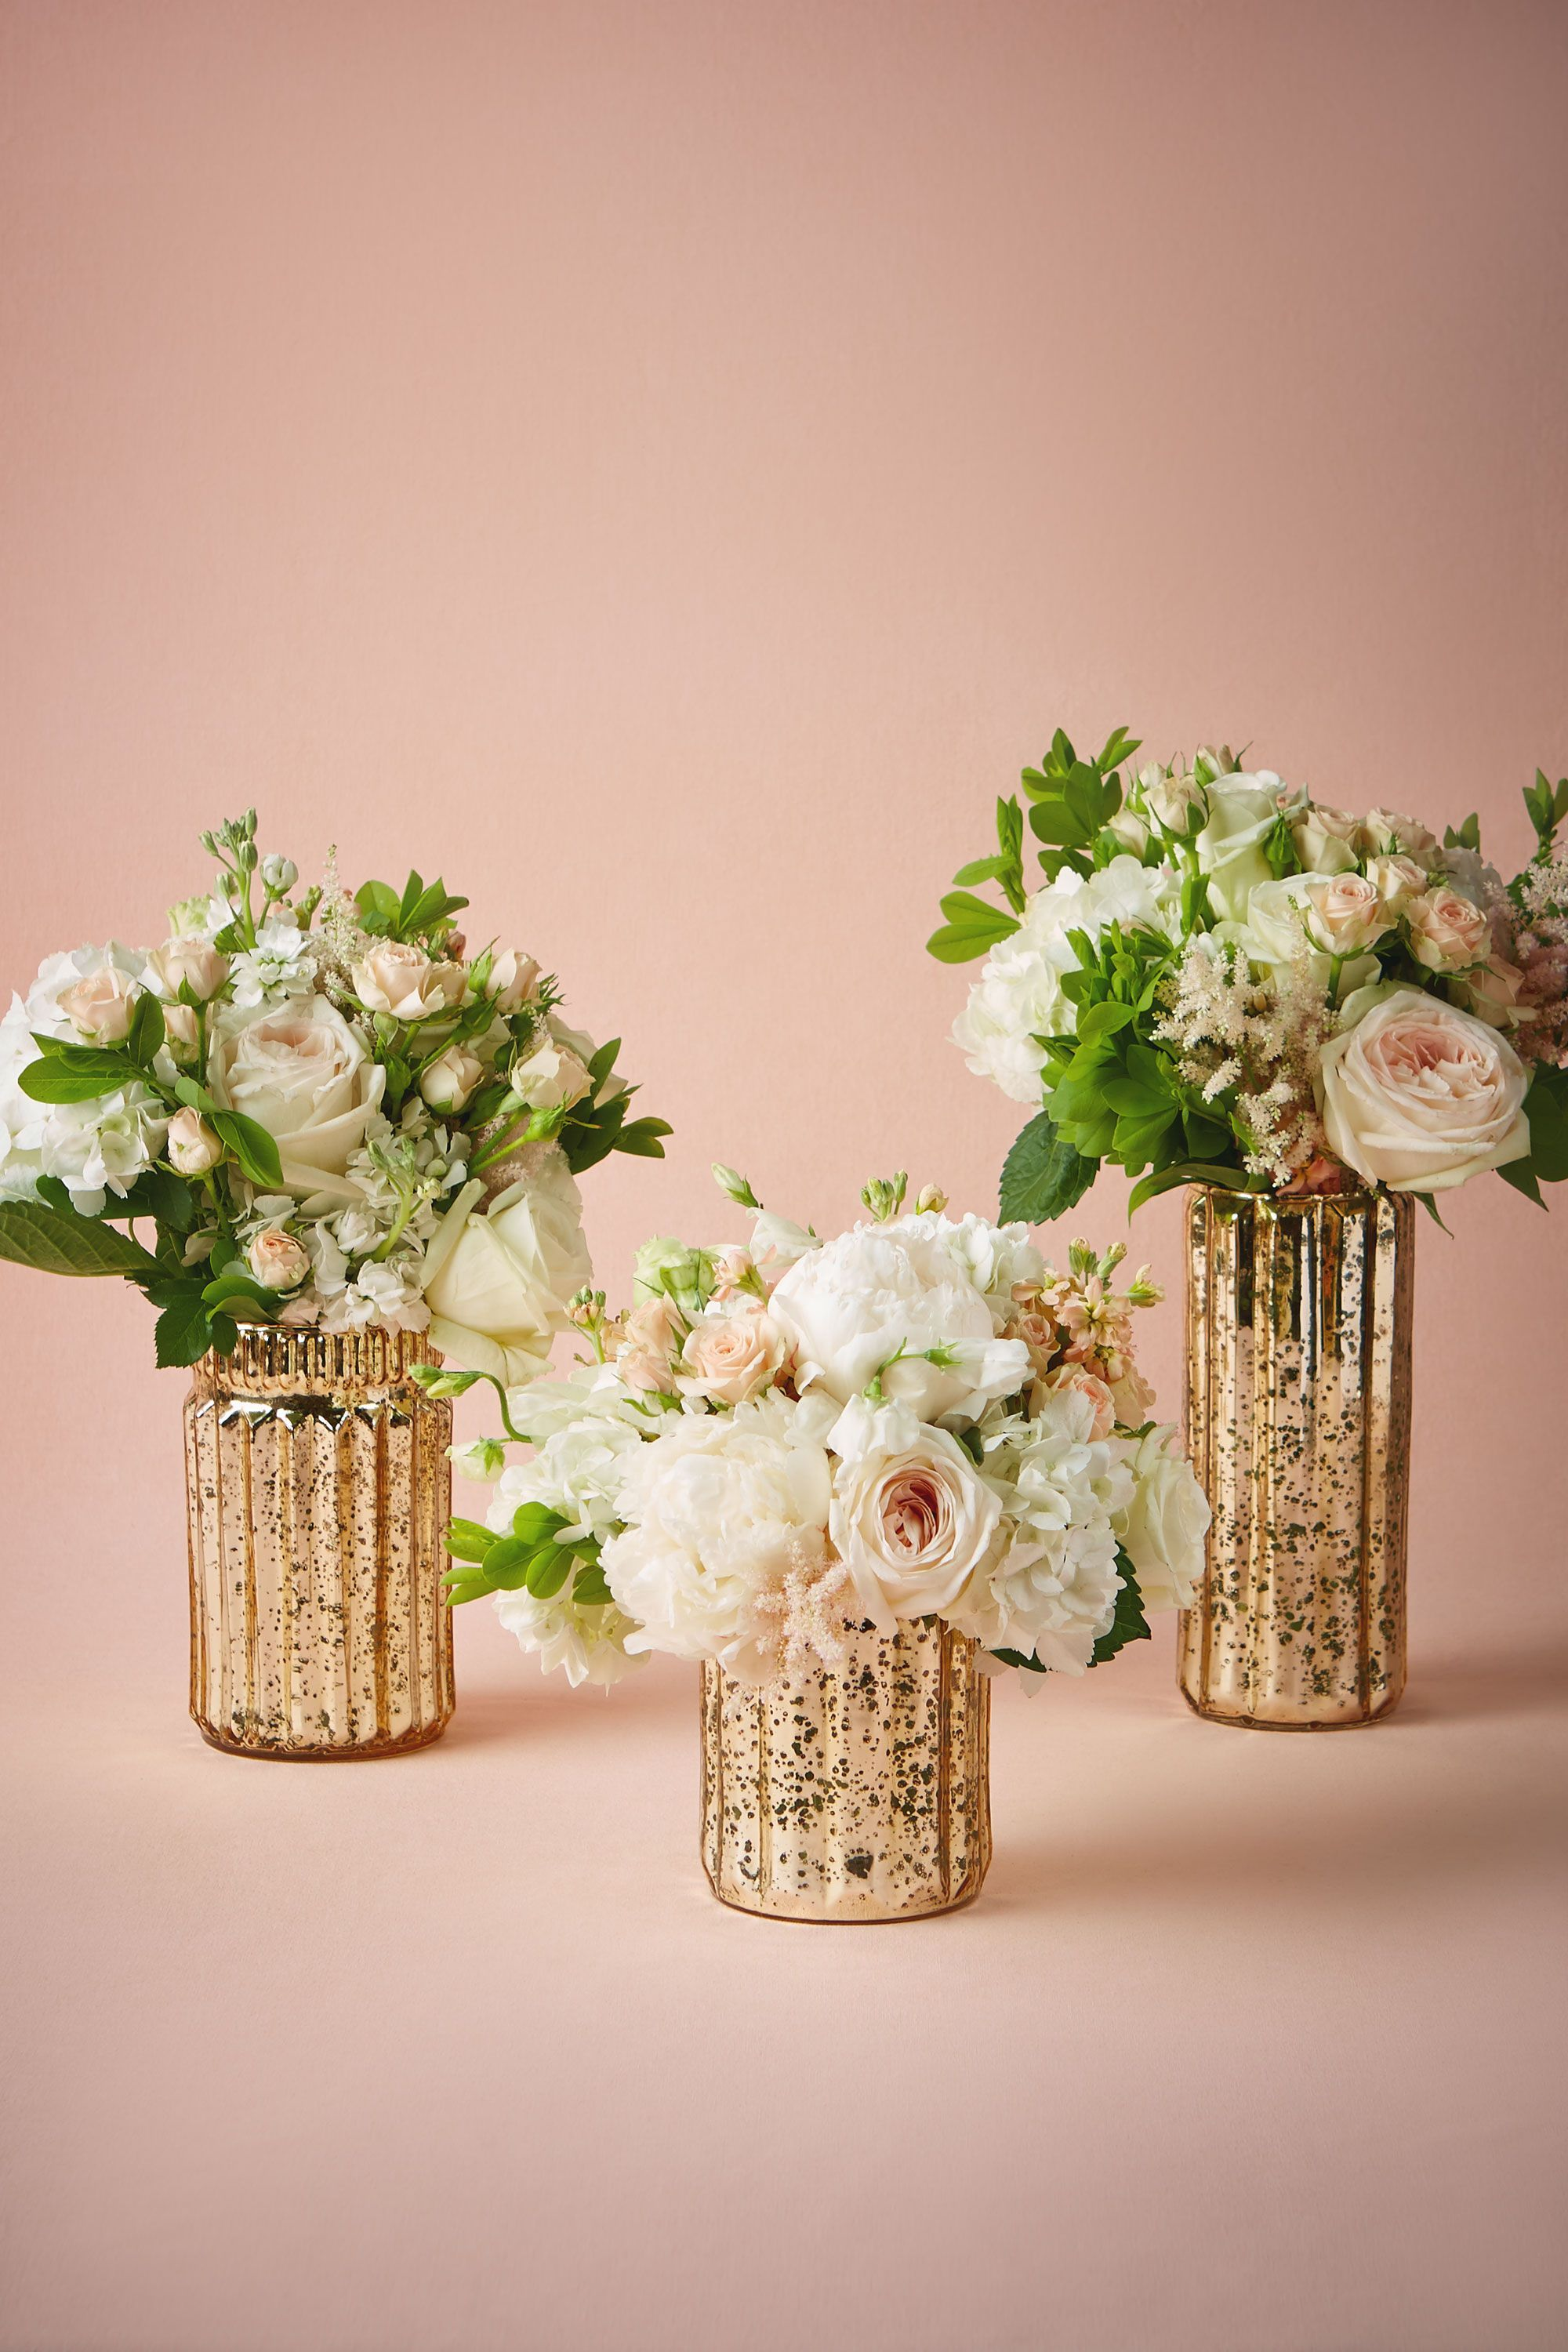 Unique Flower Vases Welcome To The Weekend Friday Link Love Creative